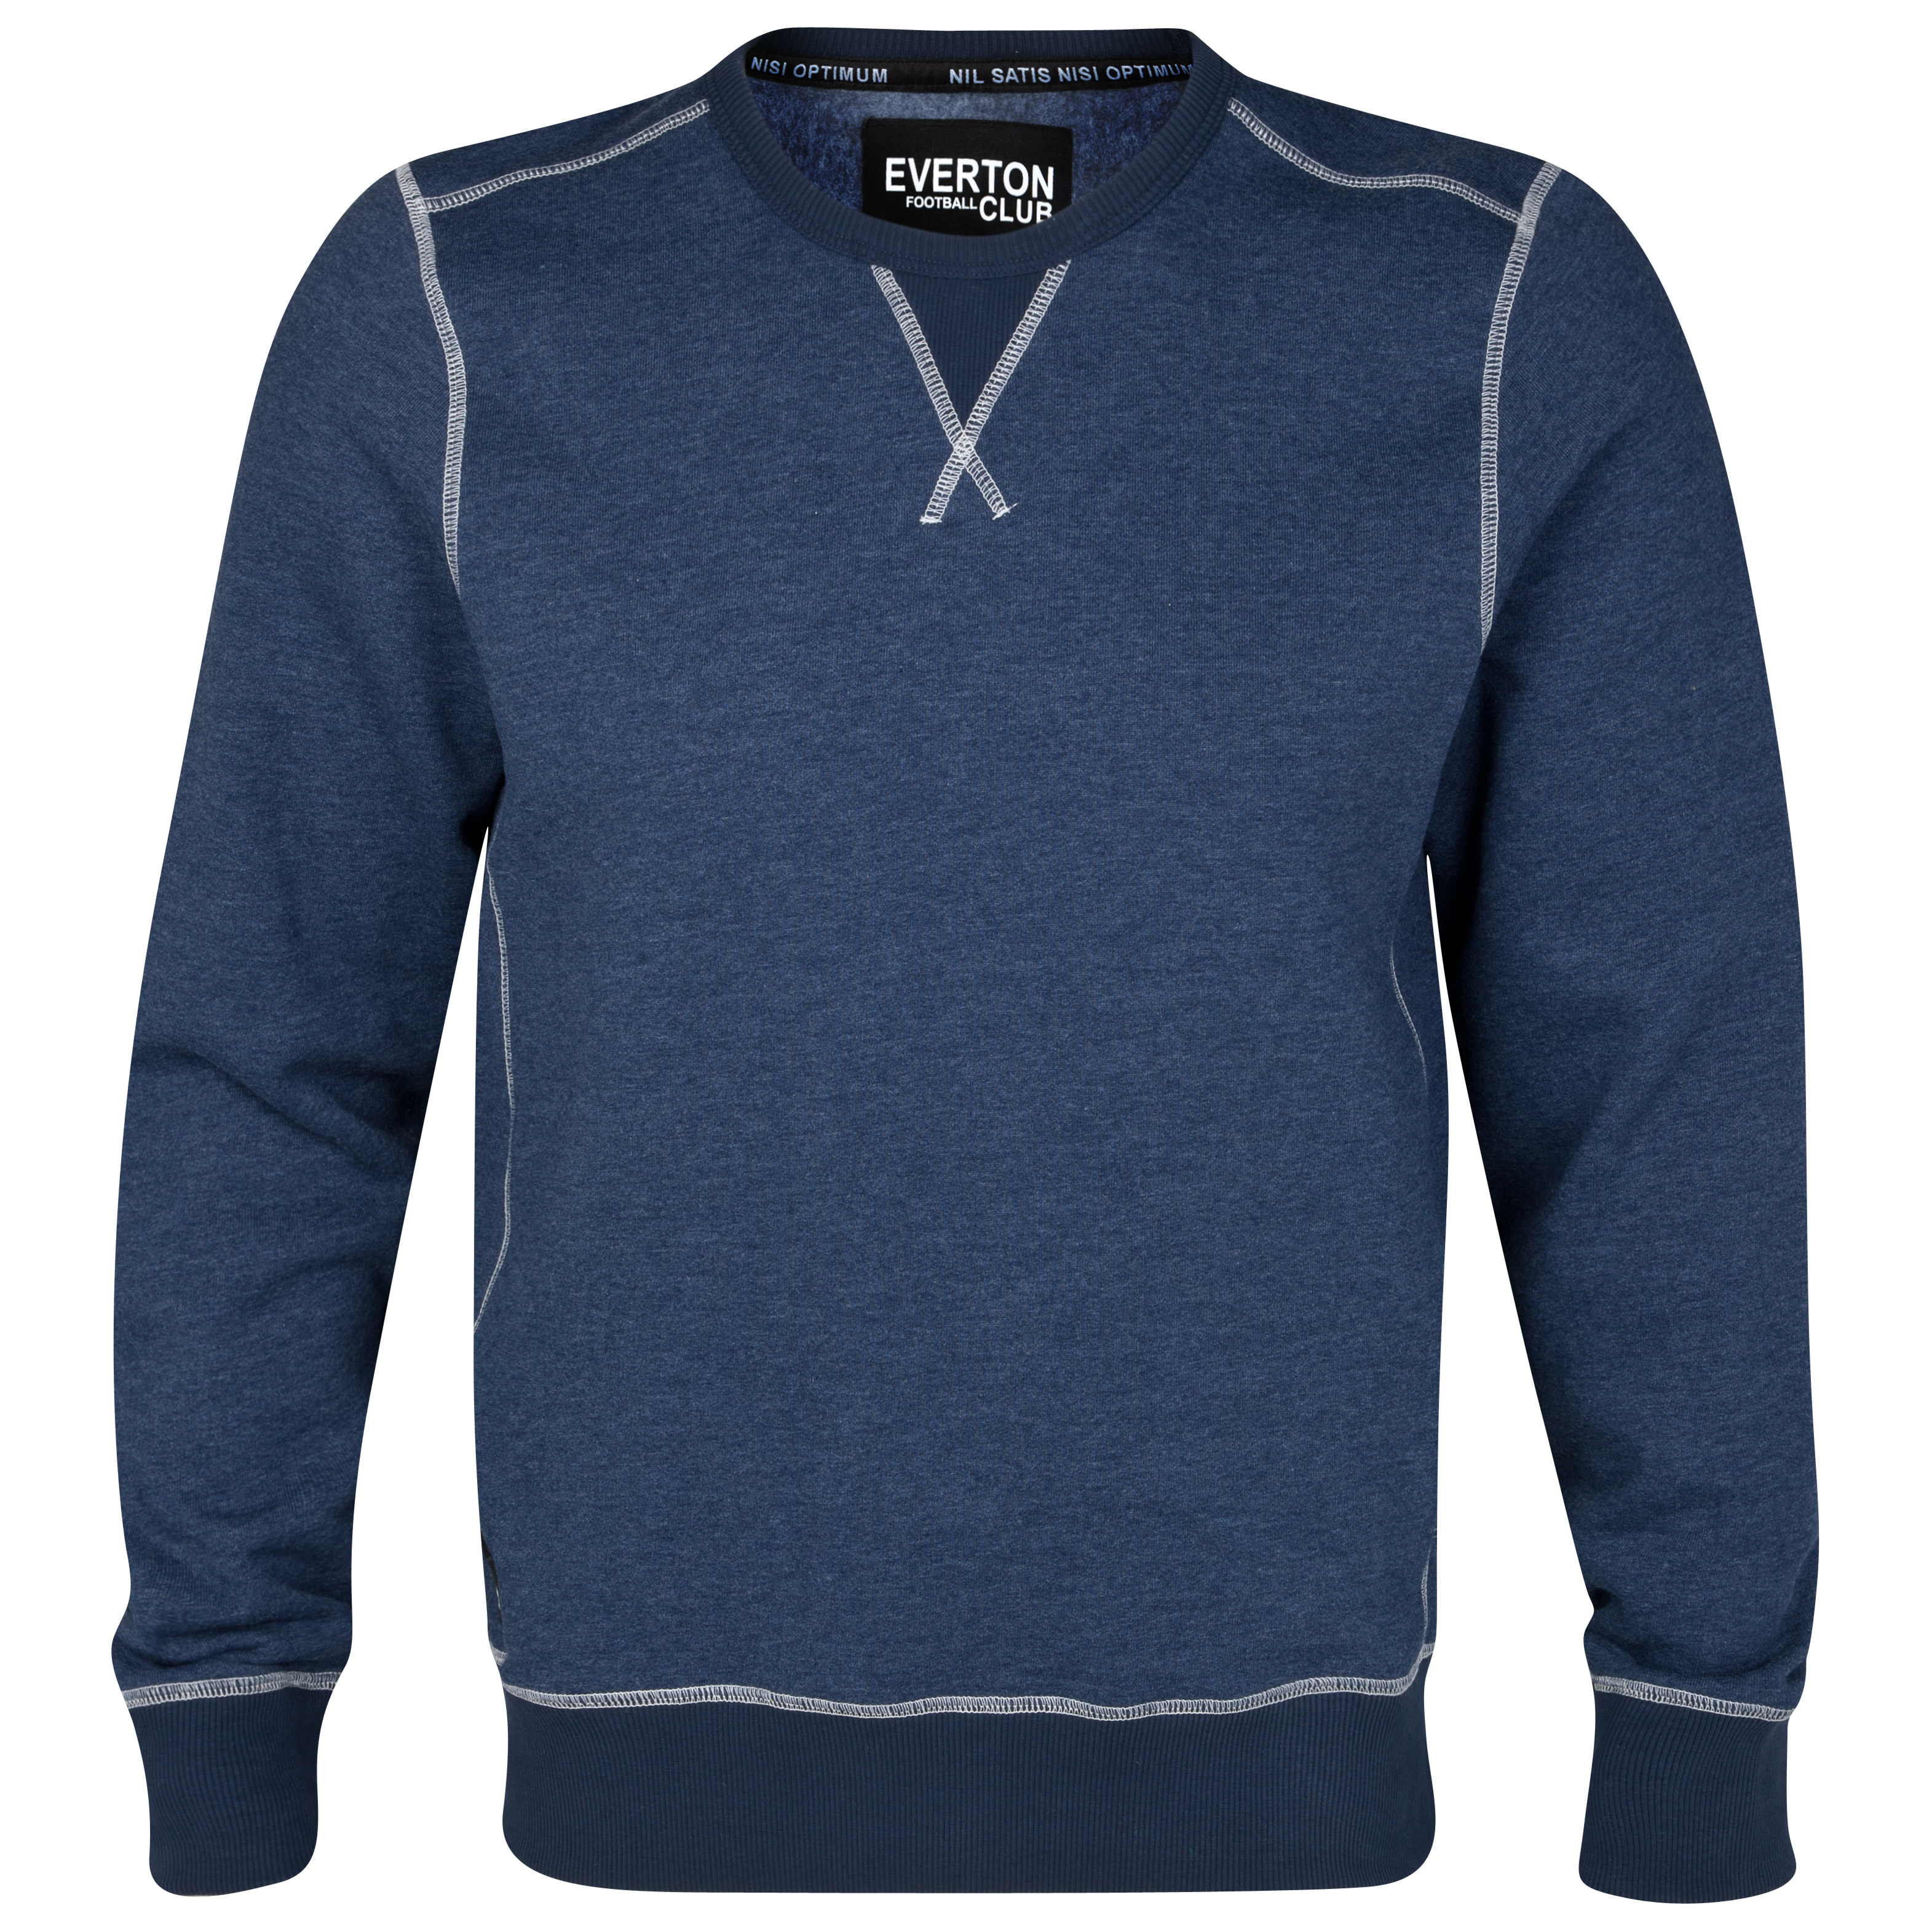 Everton Boston Crew Neck Sweater - Denim Blue